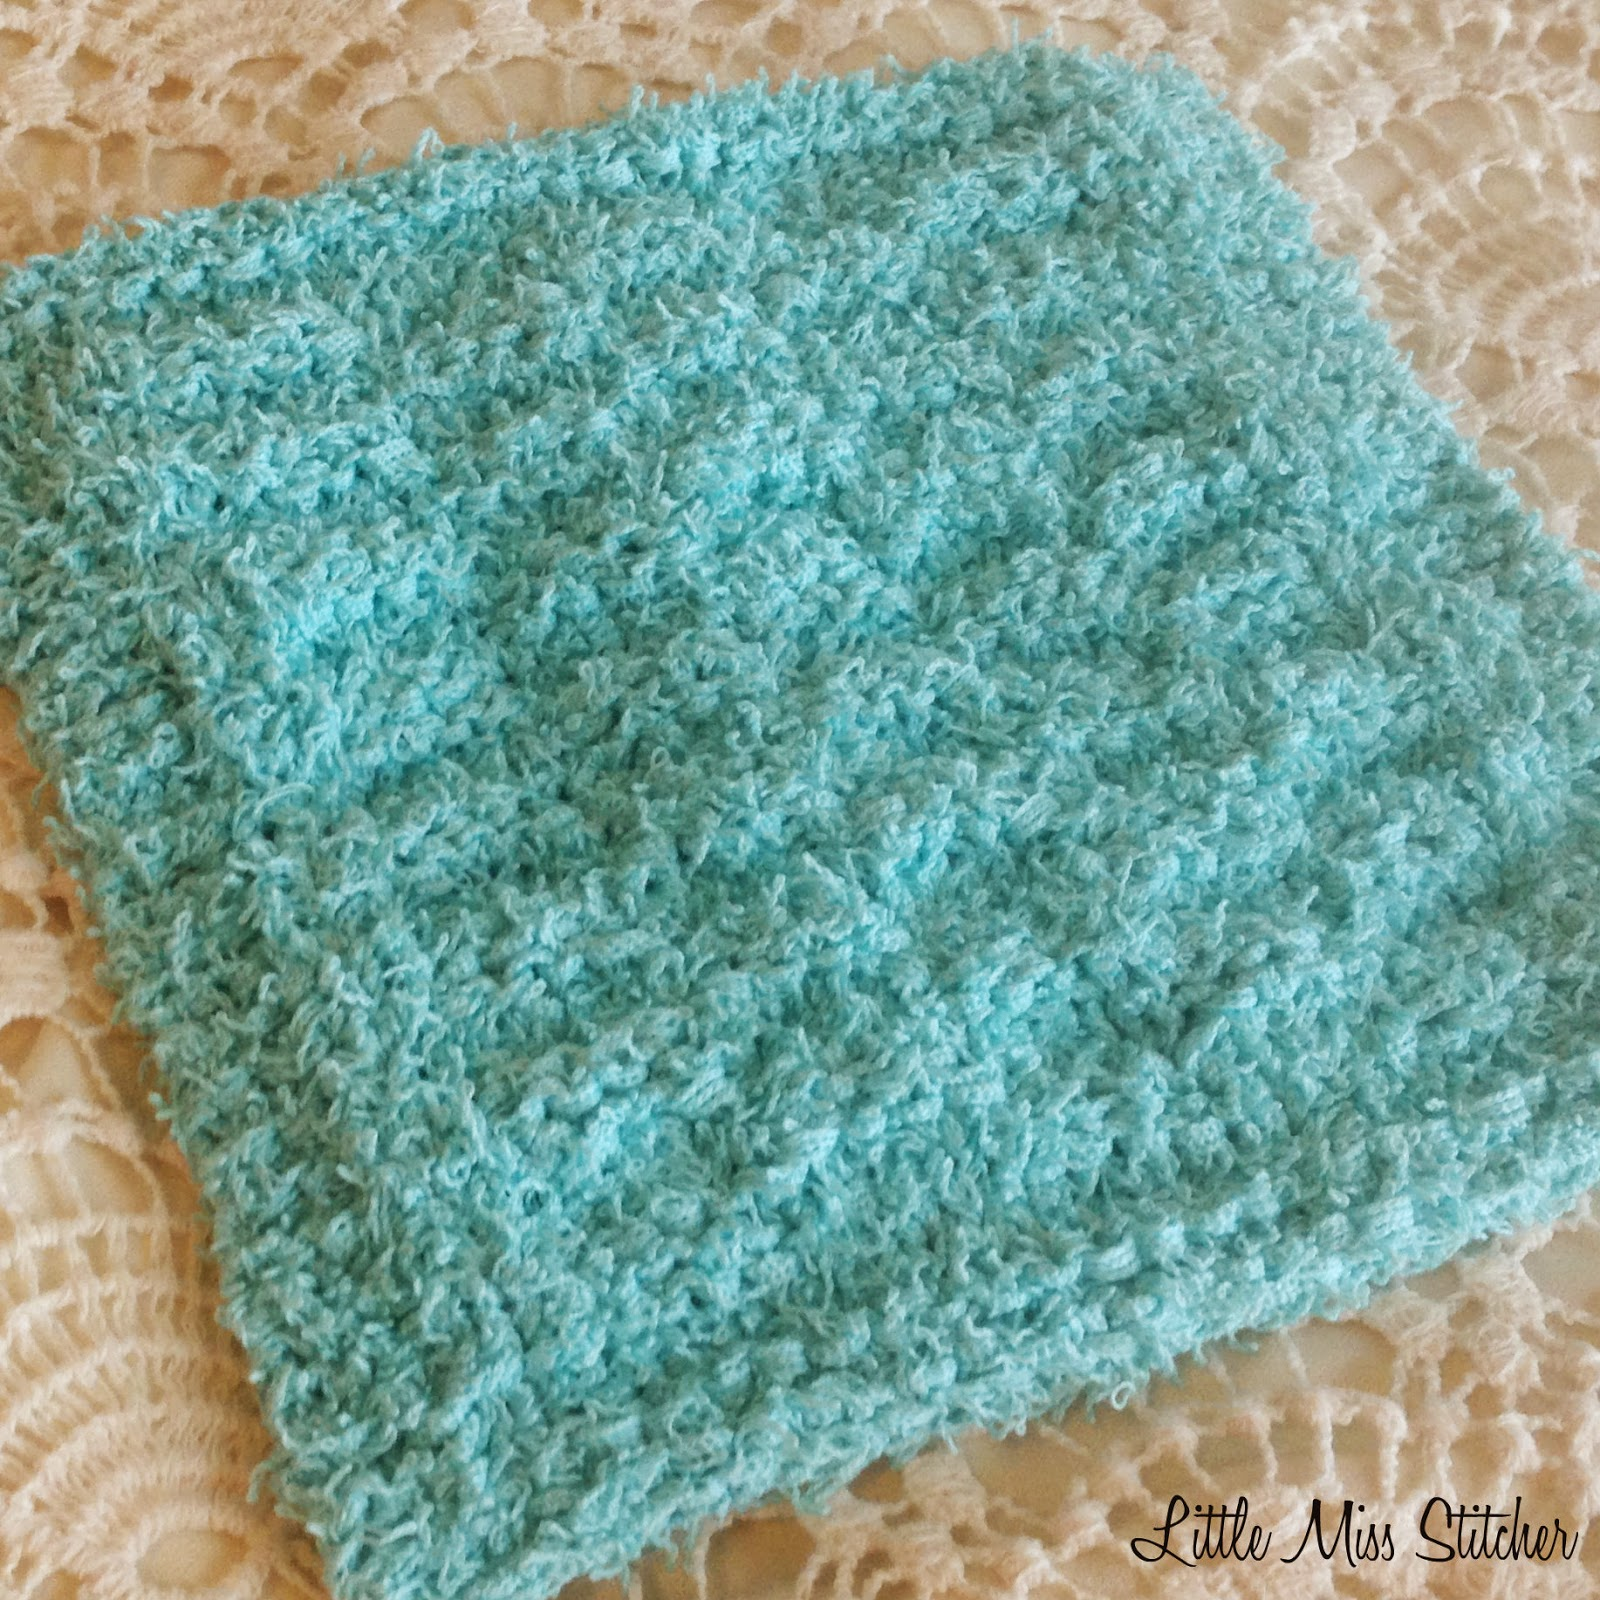 Knit Dishcloths Free Patterns : Little Miss Stitcher: 5 Free Knit Dishcloth Patterns